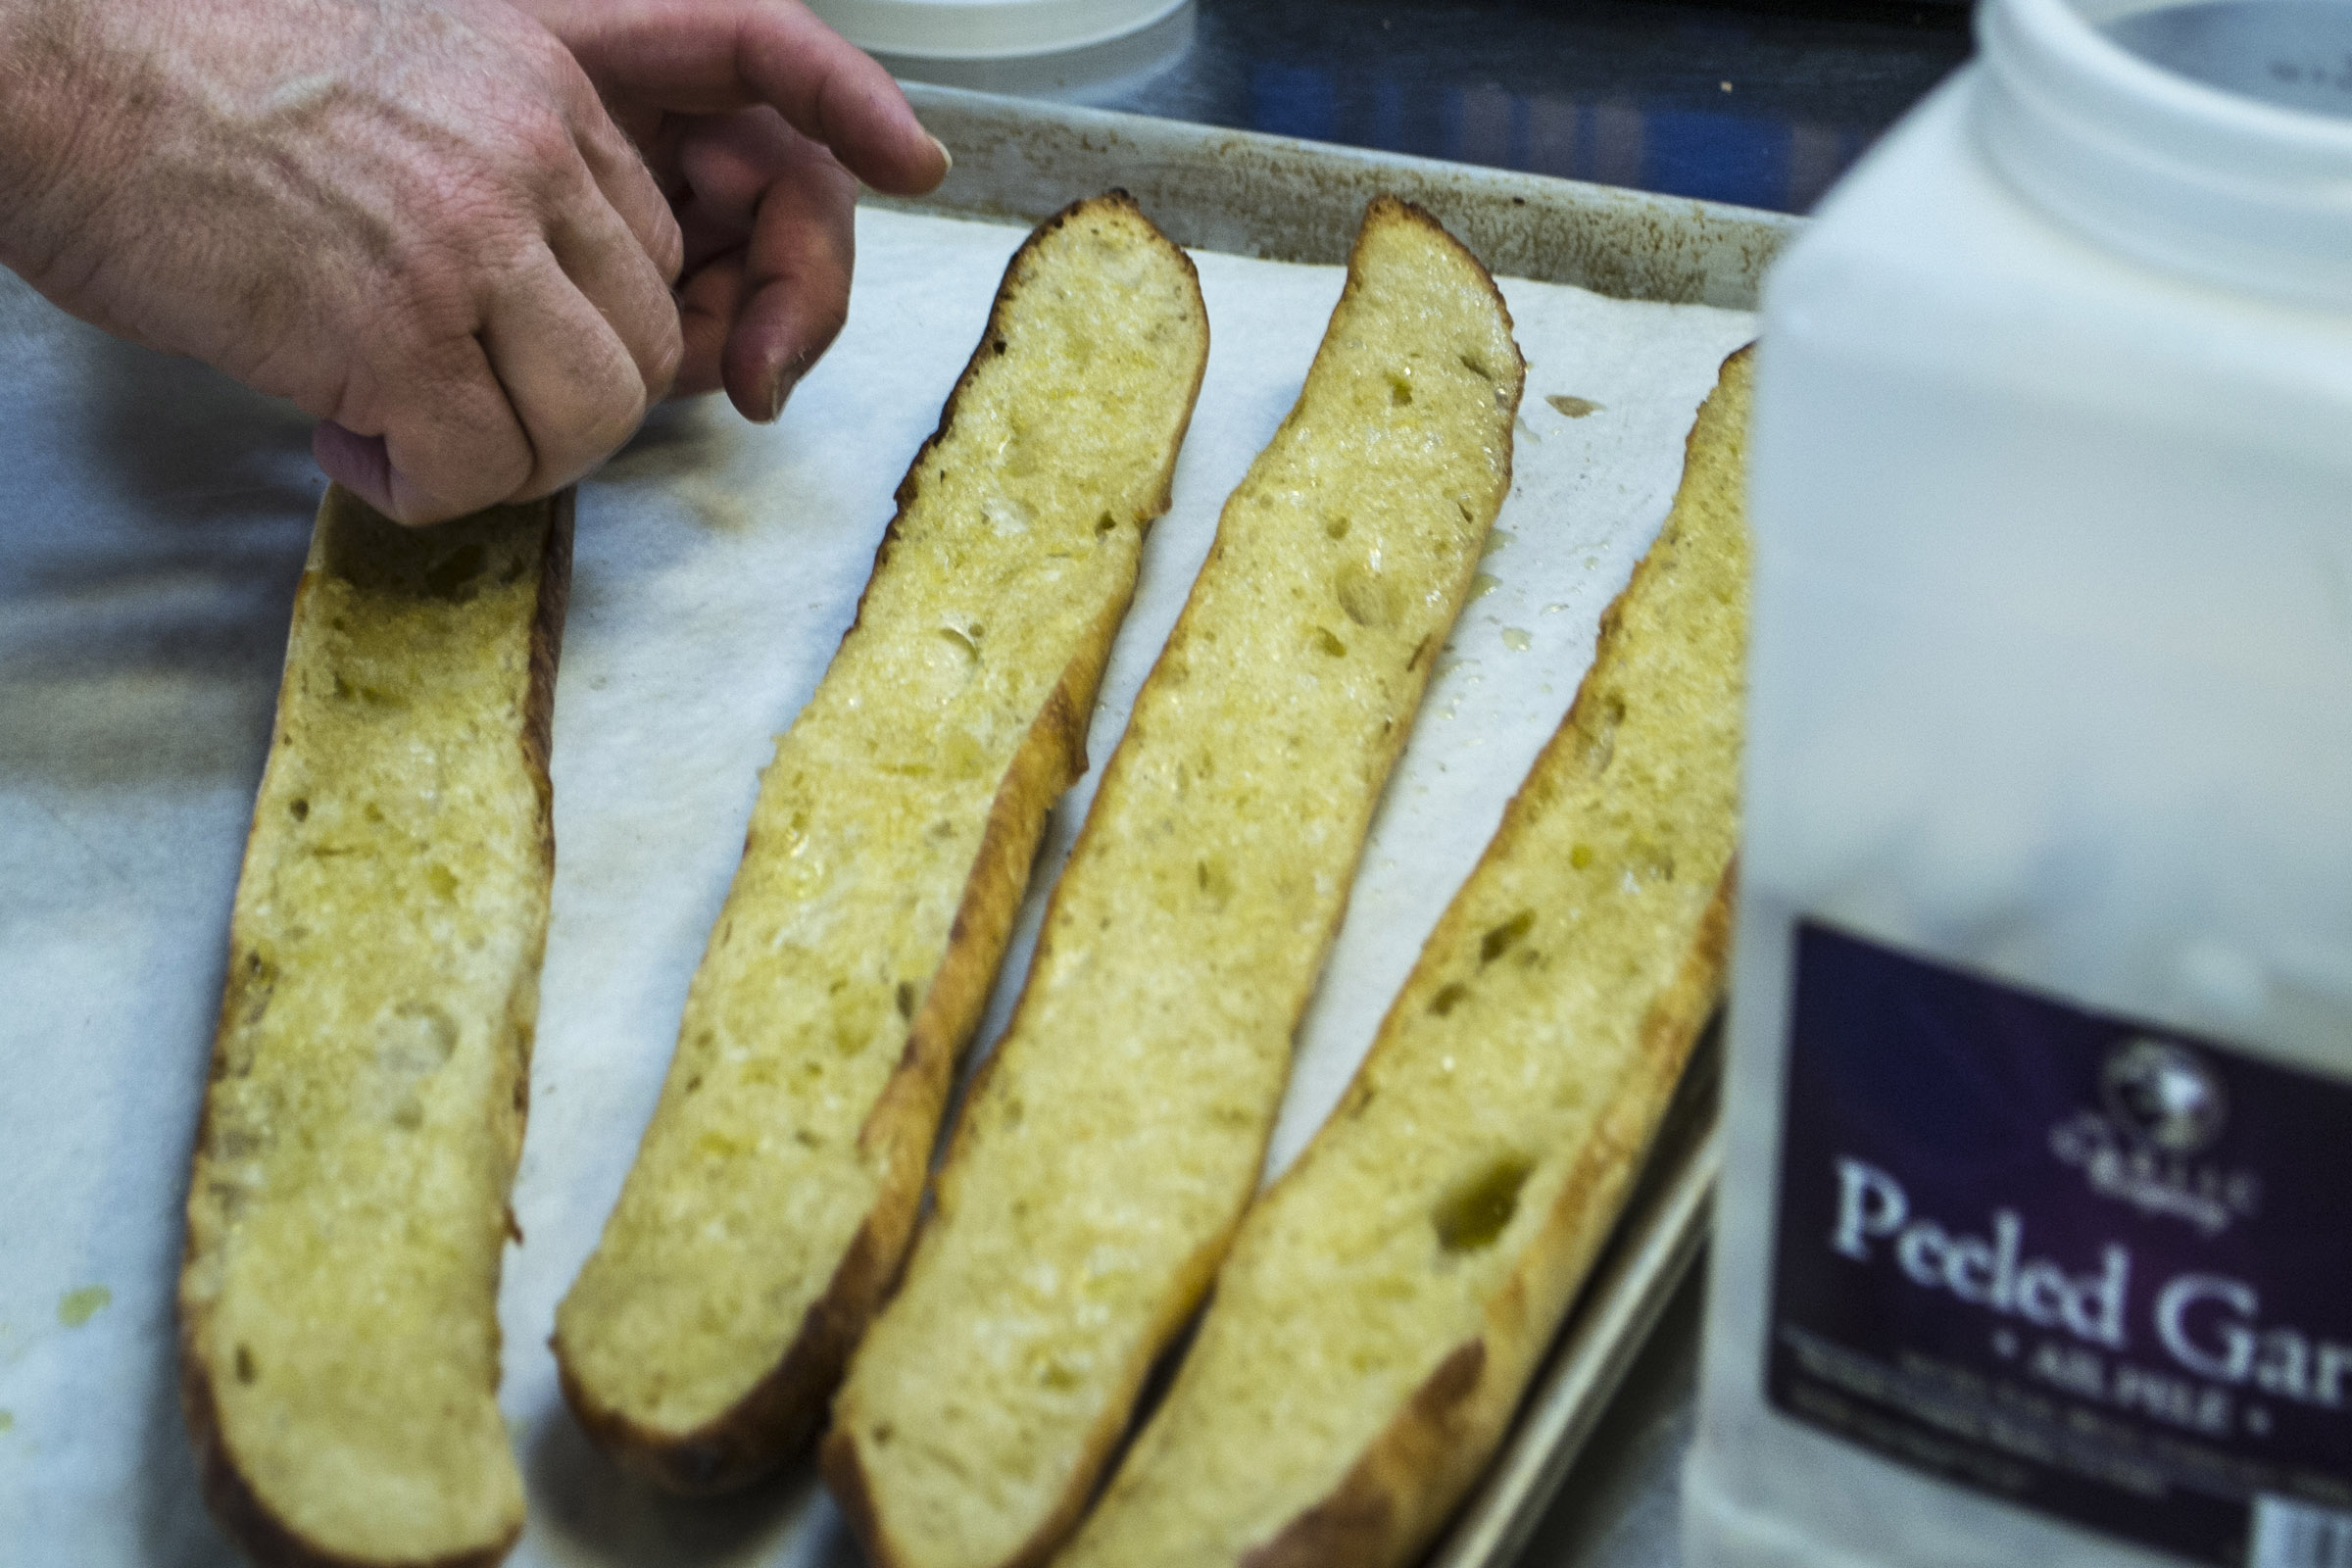 Rustic Italian Garlic Bread made by toasting Old Dog Baking Co. baguettes with olive oil and finishing off by rubbing with fresh garlic.